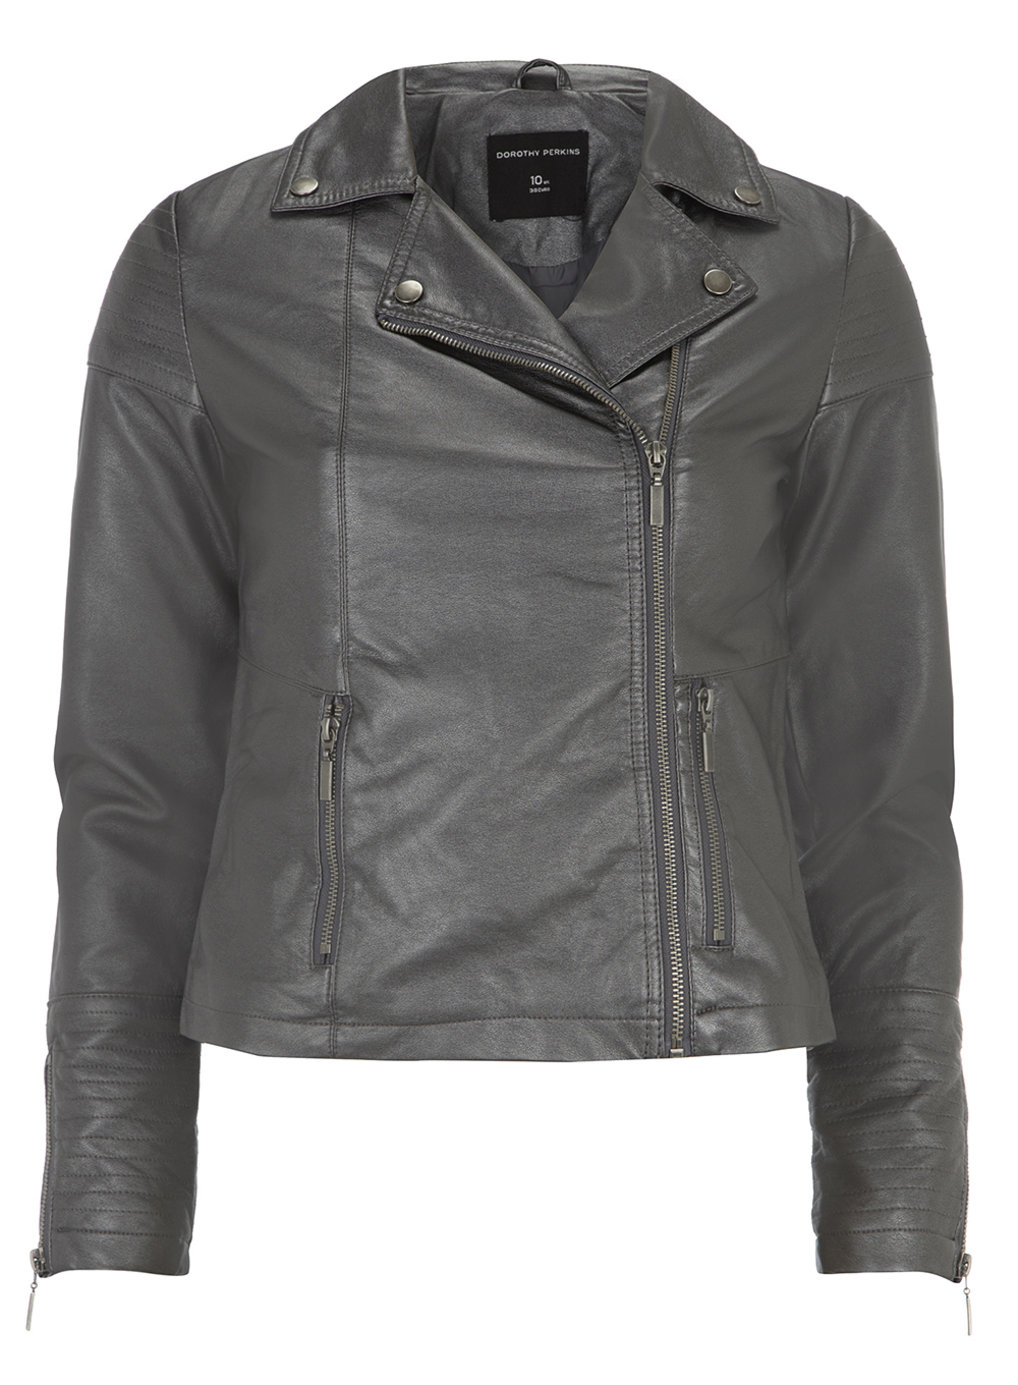 Pewter metallic stitch biker jacket